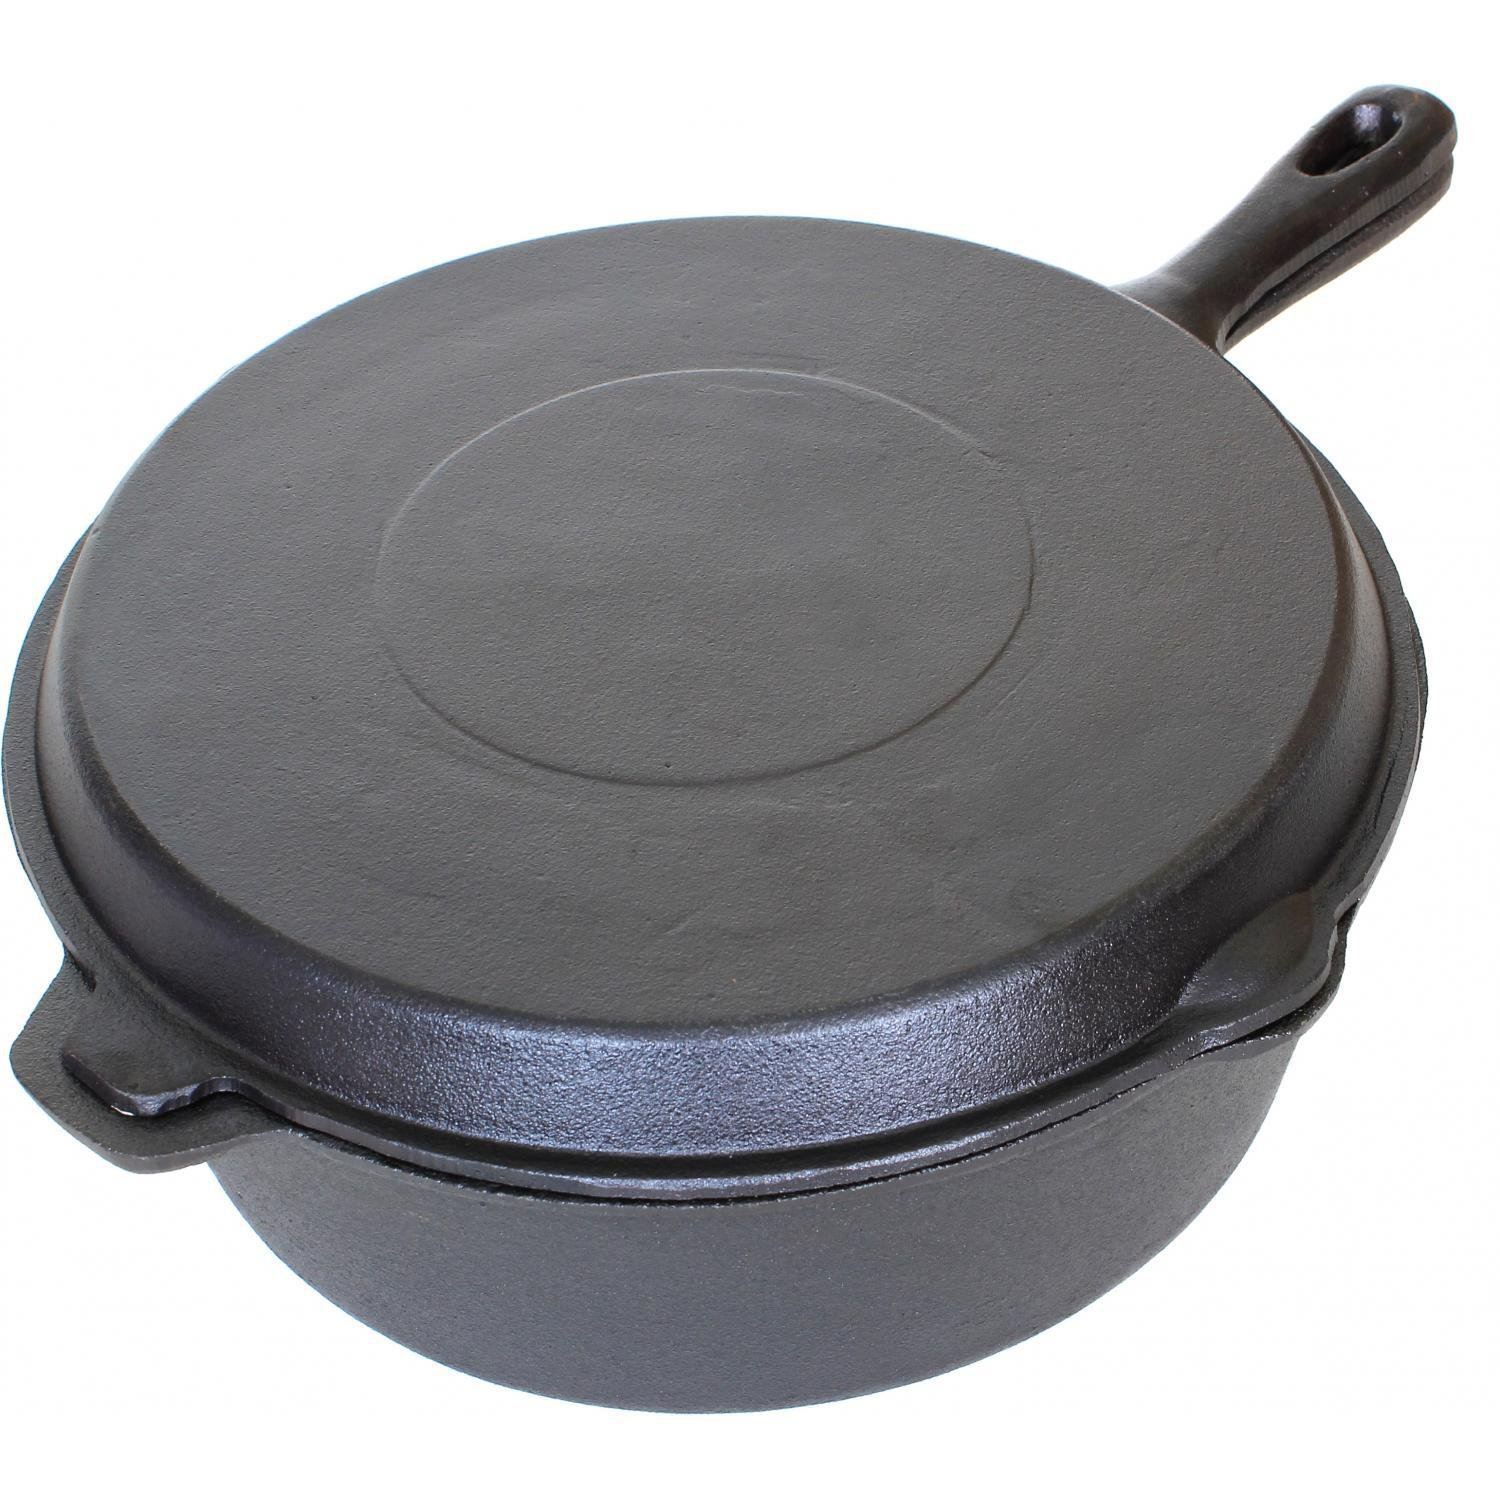 Cajun Cookware 6-quart Seasoned Cast Iron Combo Cooker - Gl10495ds